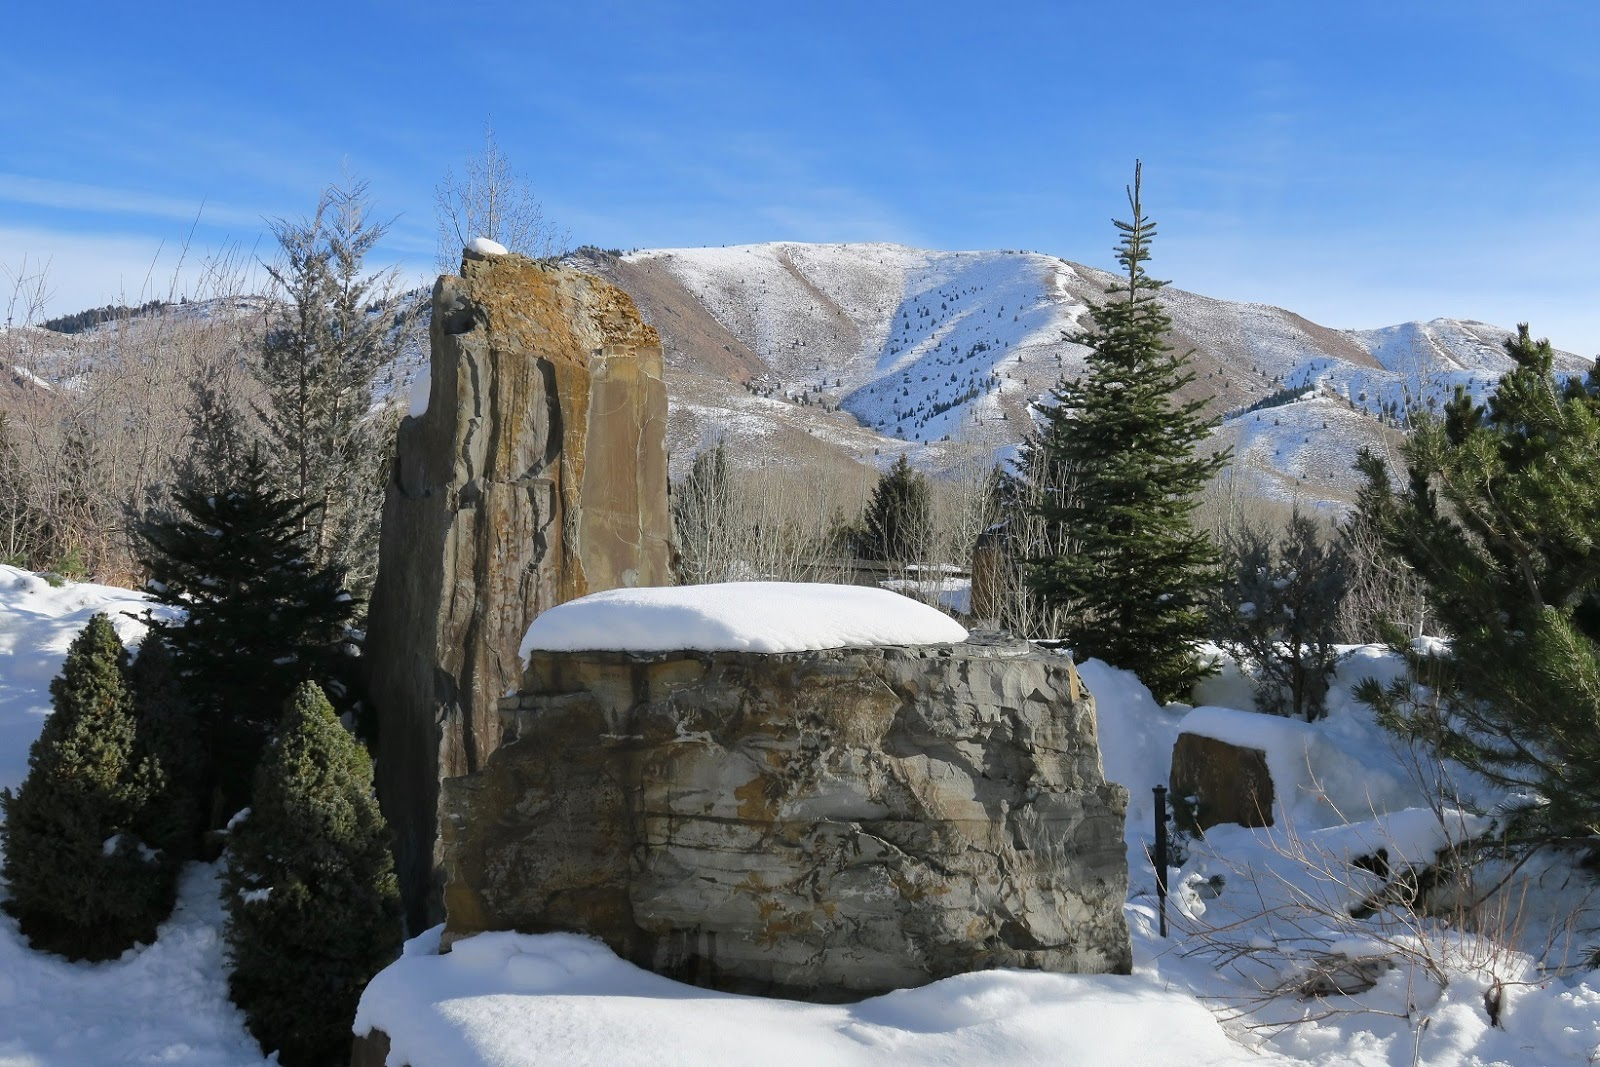 The Sawtooth Botanical Garden Is Located South Of Ketchum, Idaho On Highway  75. I Had Read That The Dalai Lama Visited This Part Of Idaho In September  Of ...